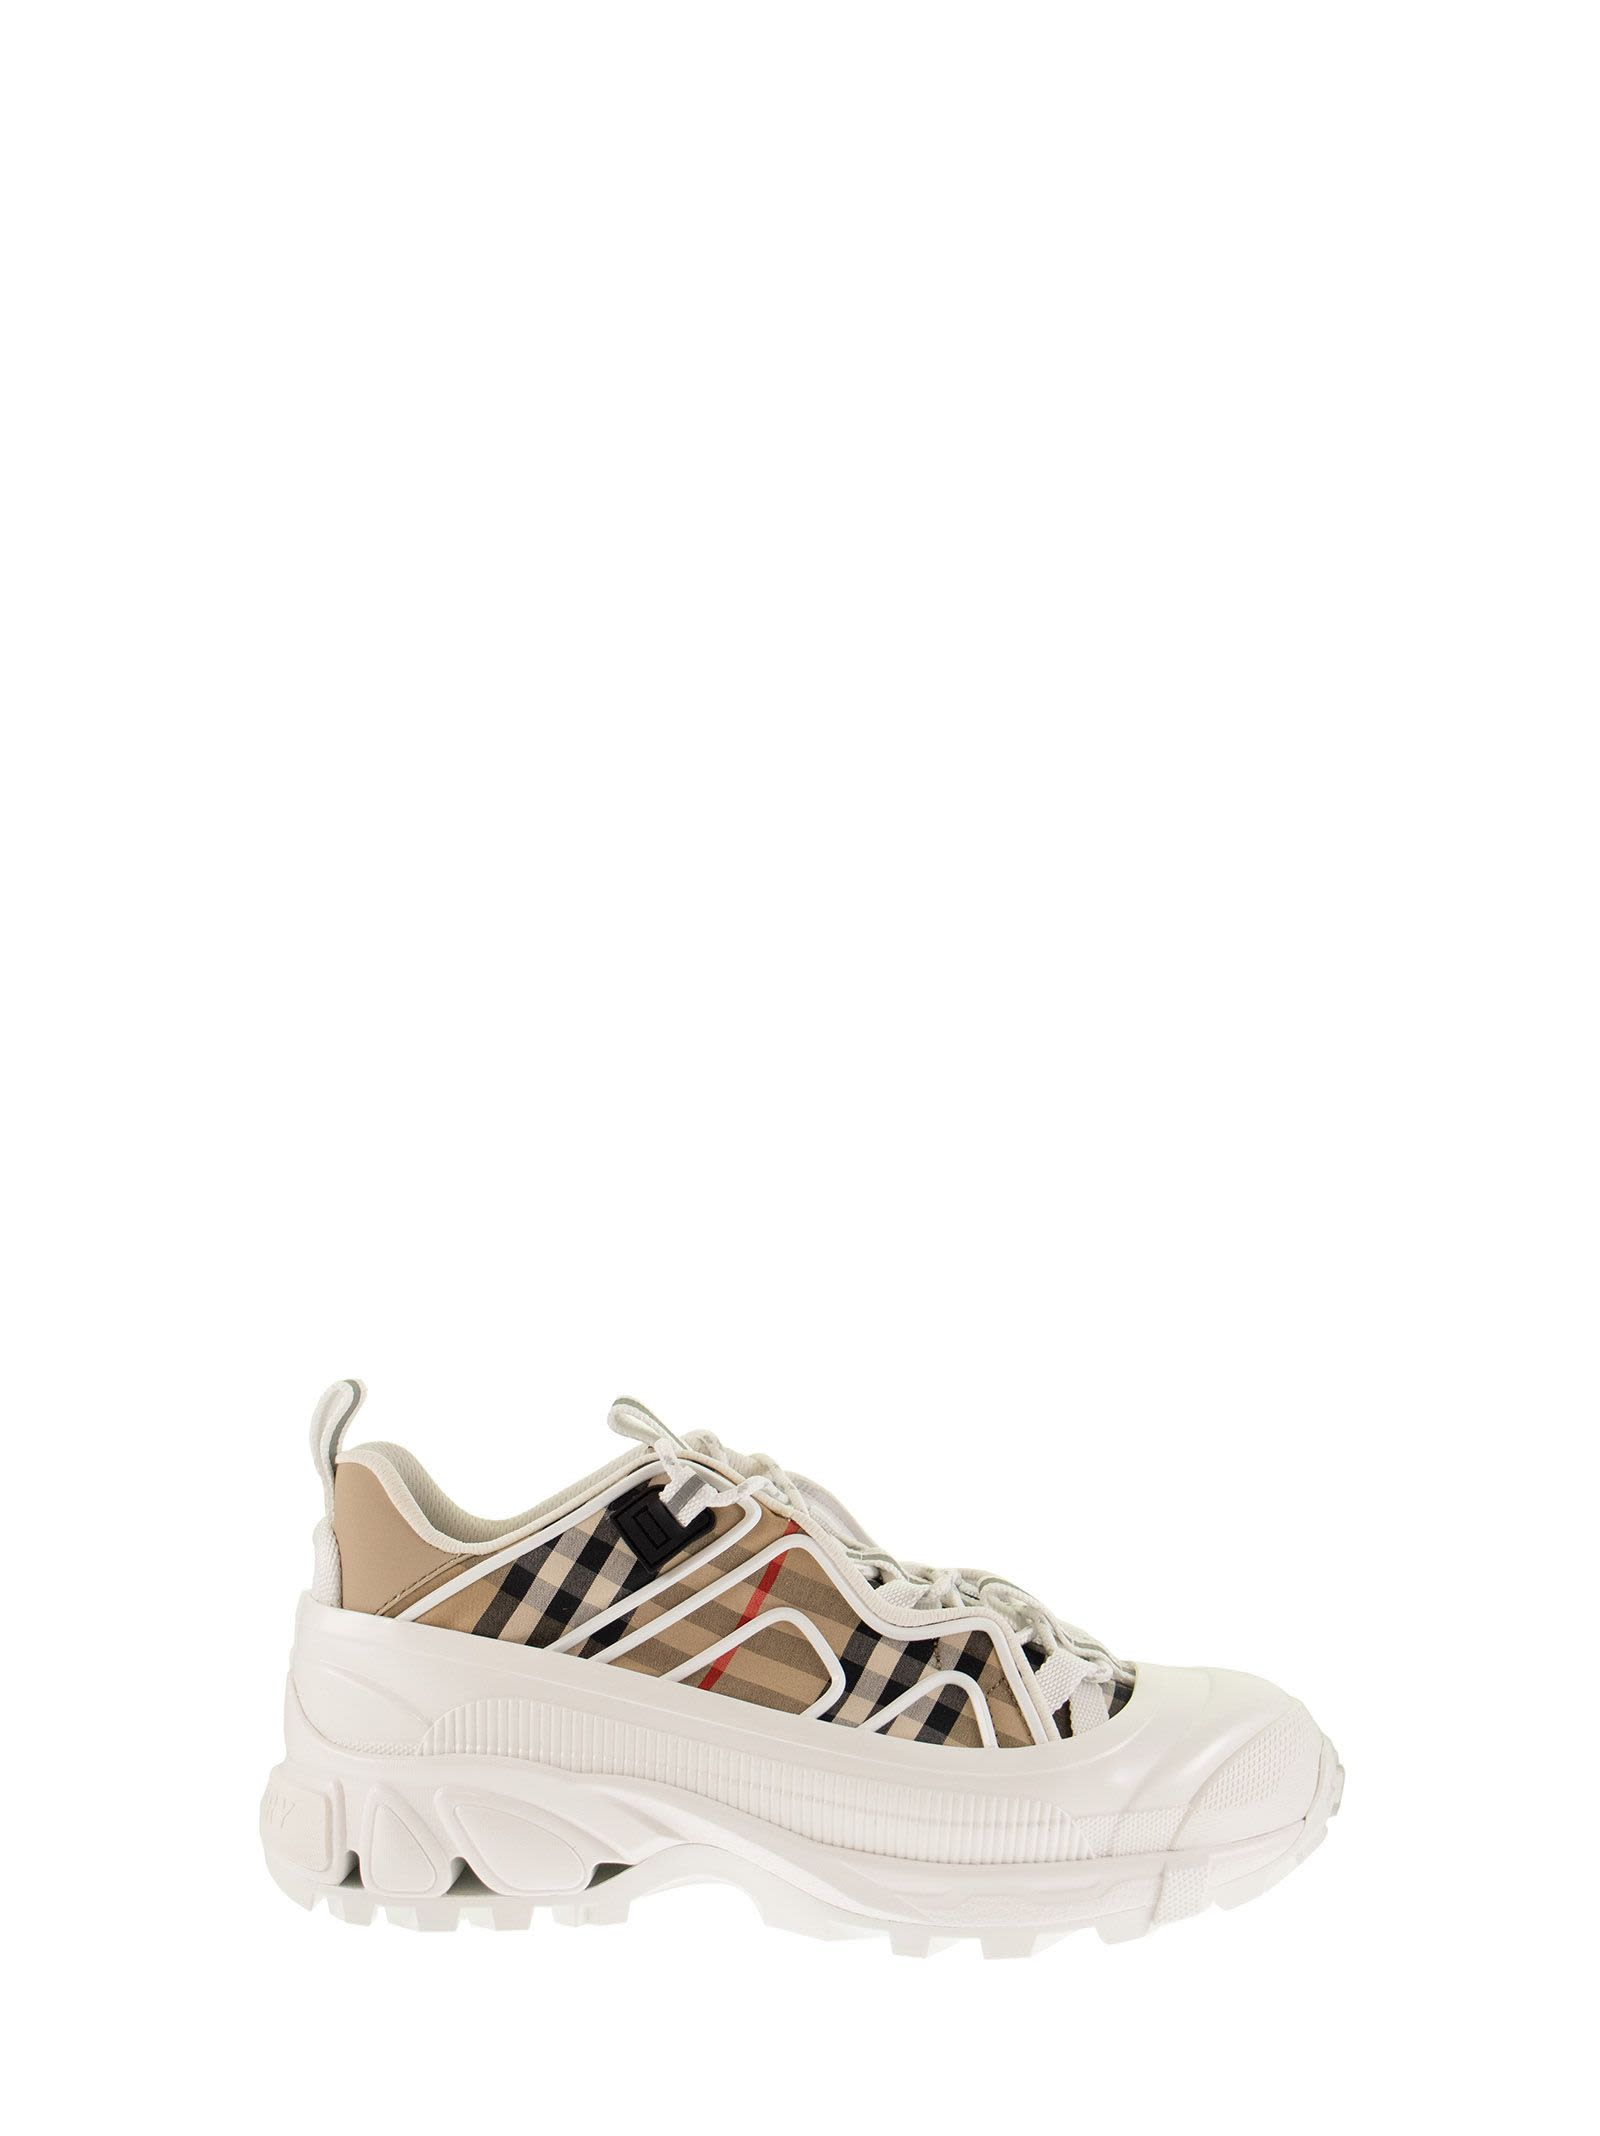 Burberry VINTAGE CHECK COTTON AND LEATHER ARTHUR SNEAKERS ARCHIVE BEIGE